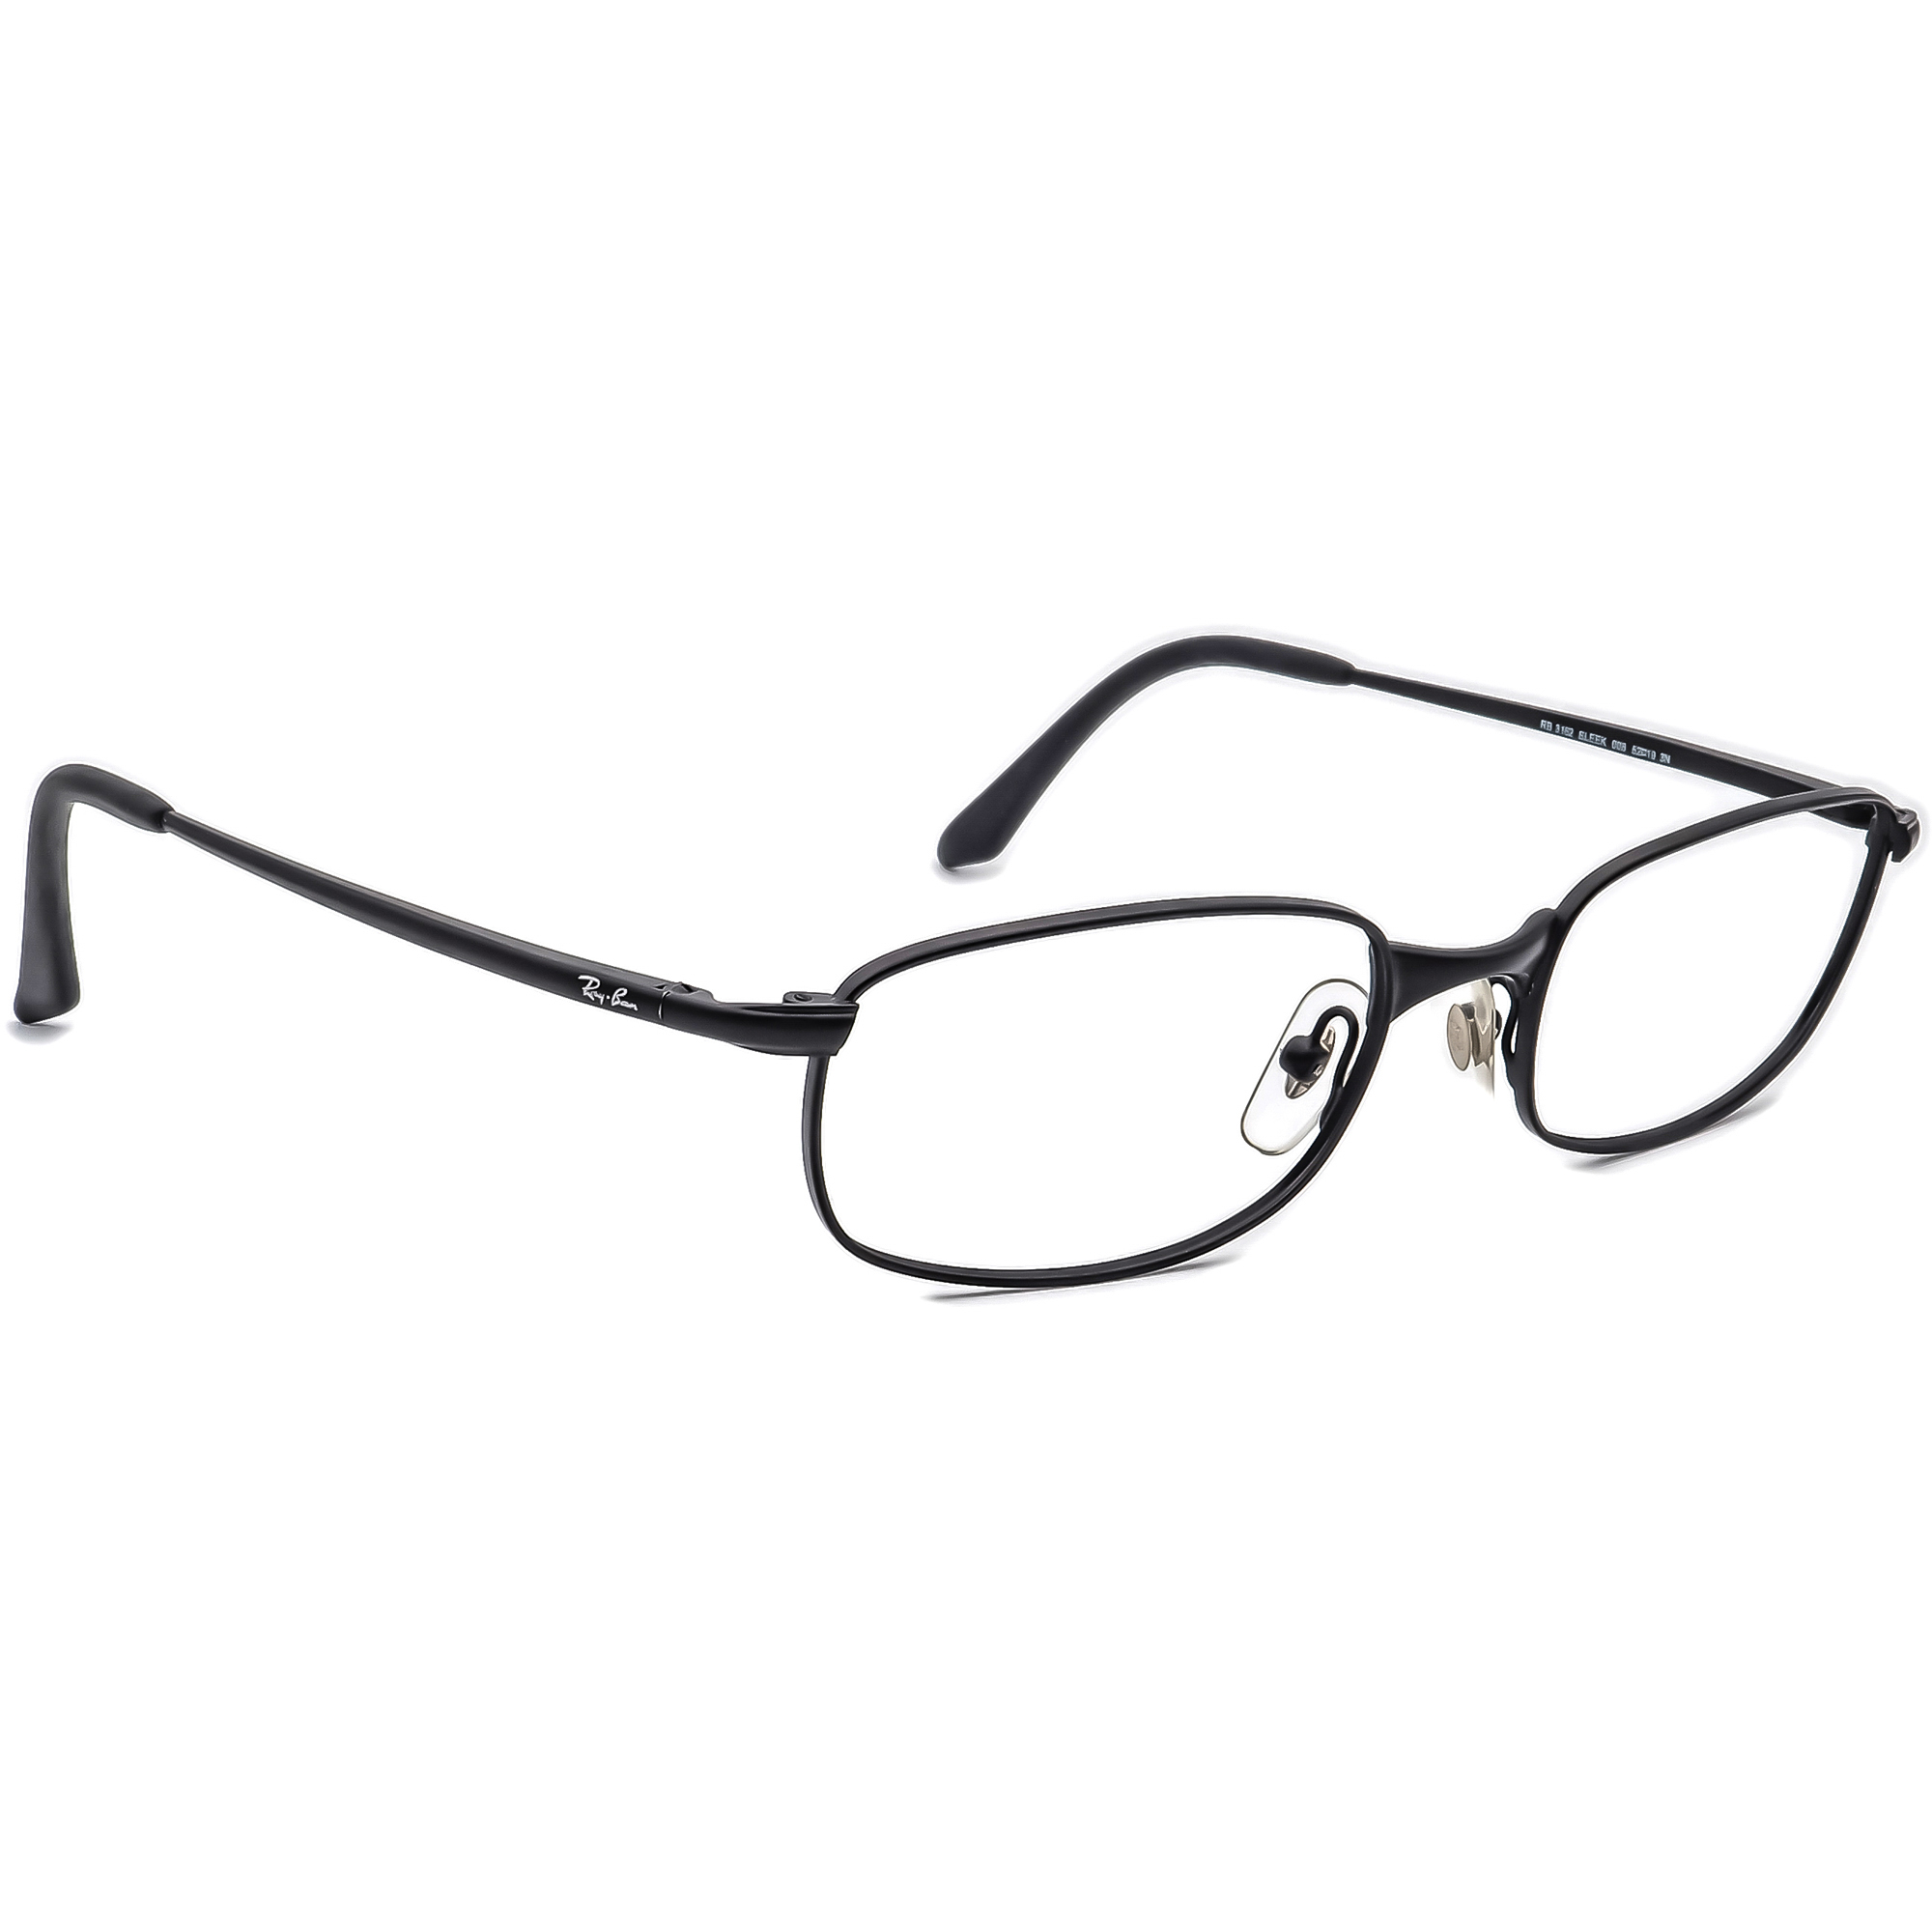 Ray-Ban RB 3162 Sleek 006 Sunglasses Frame Only